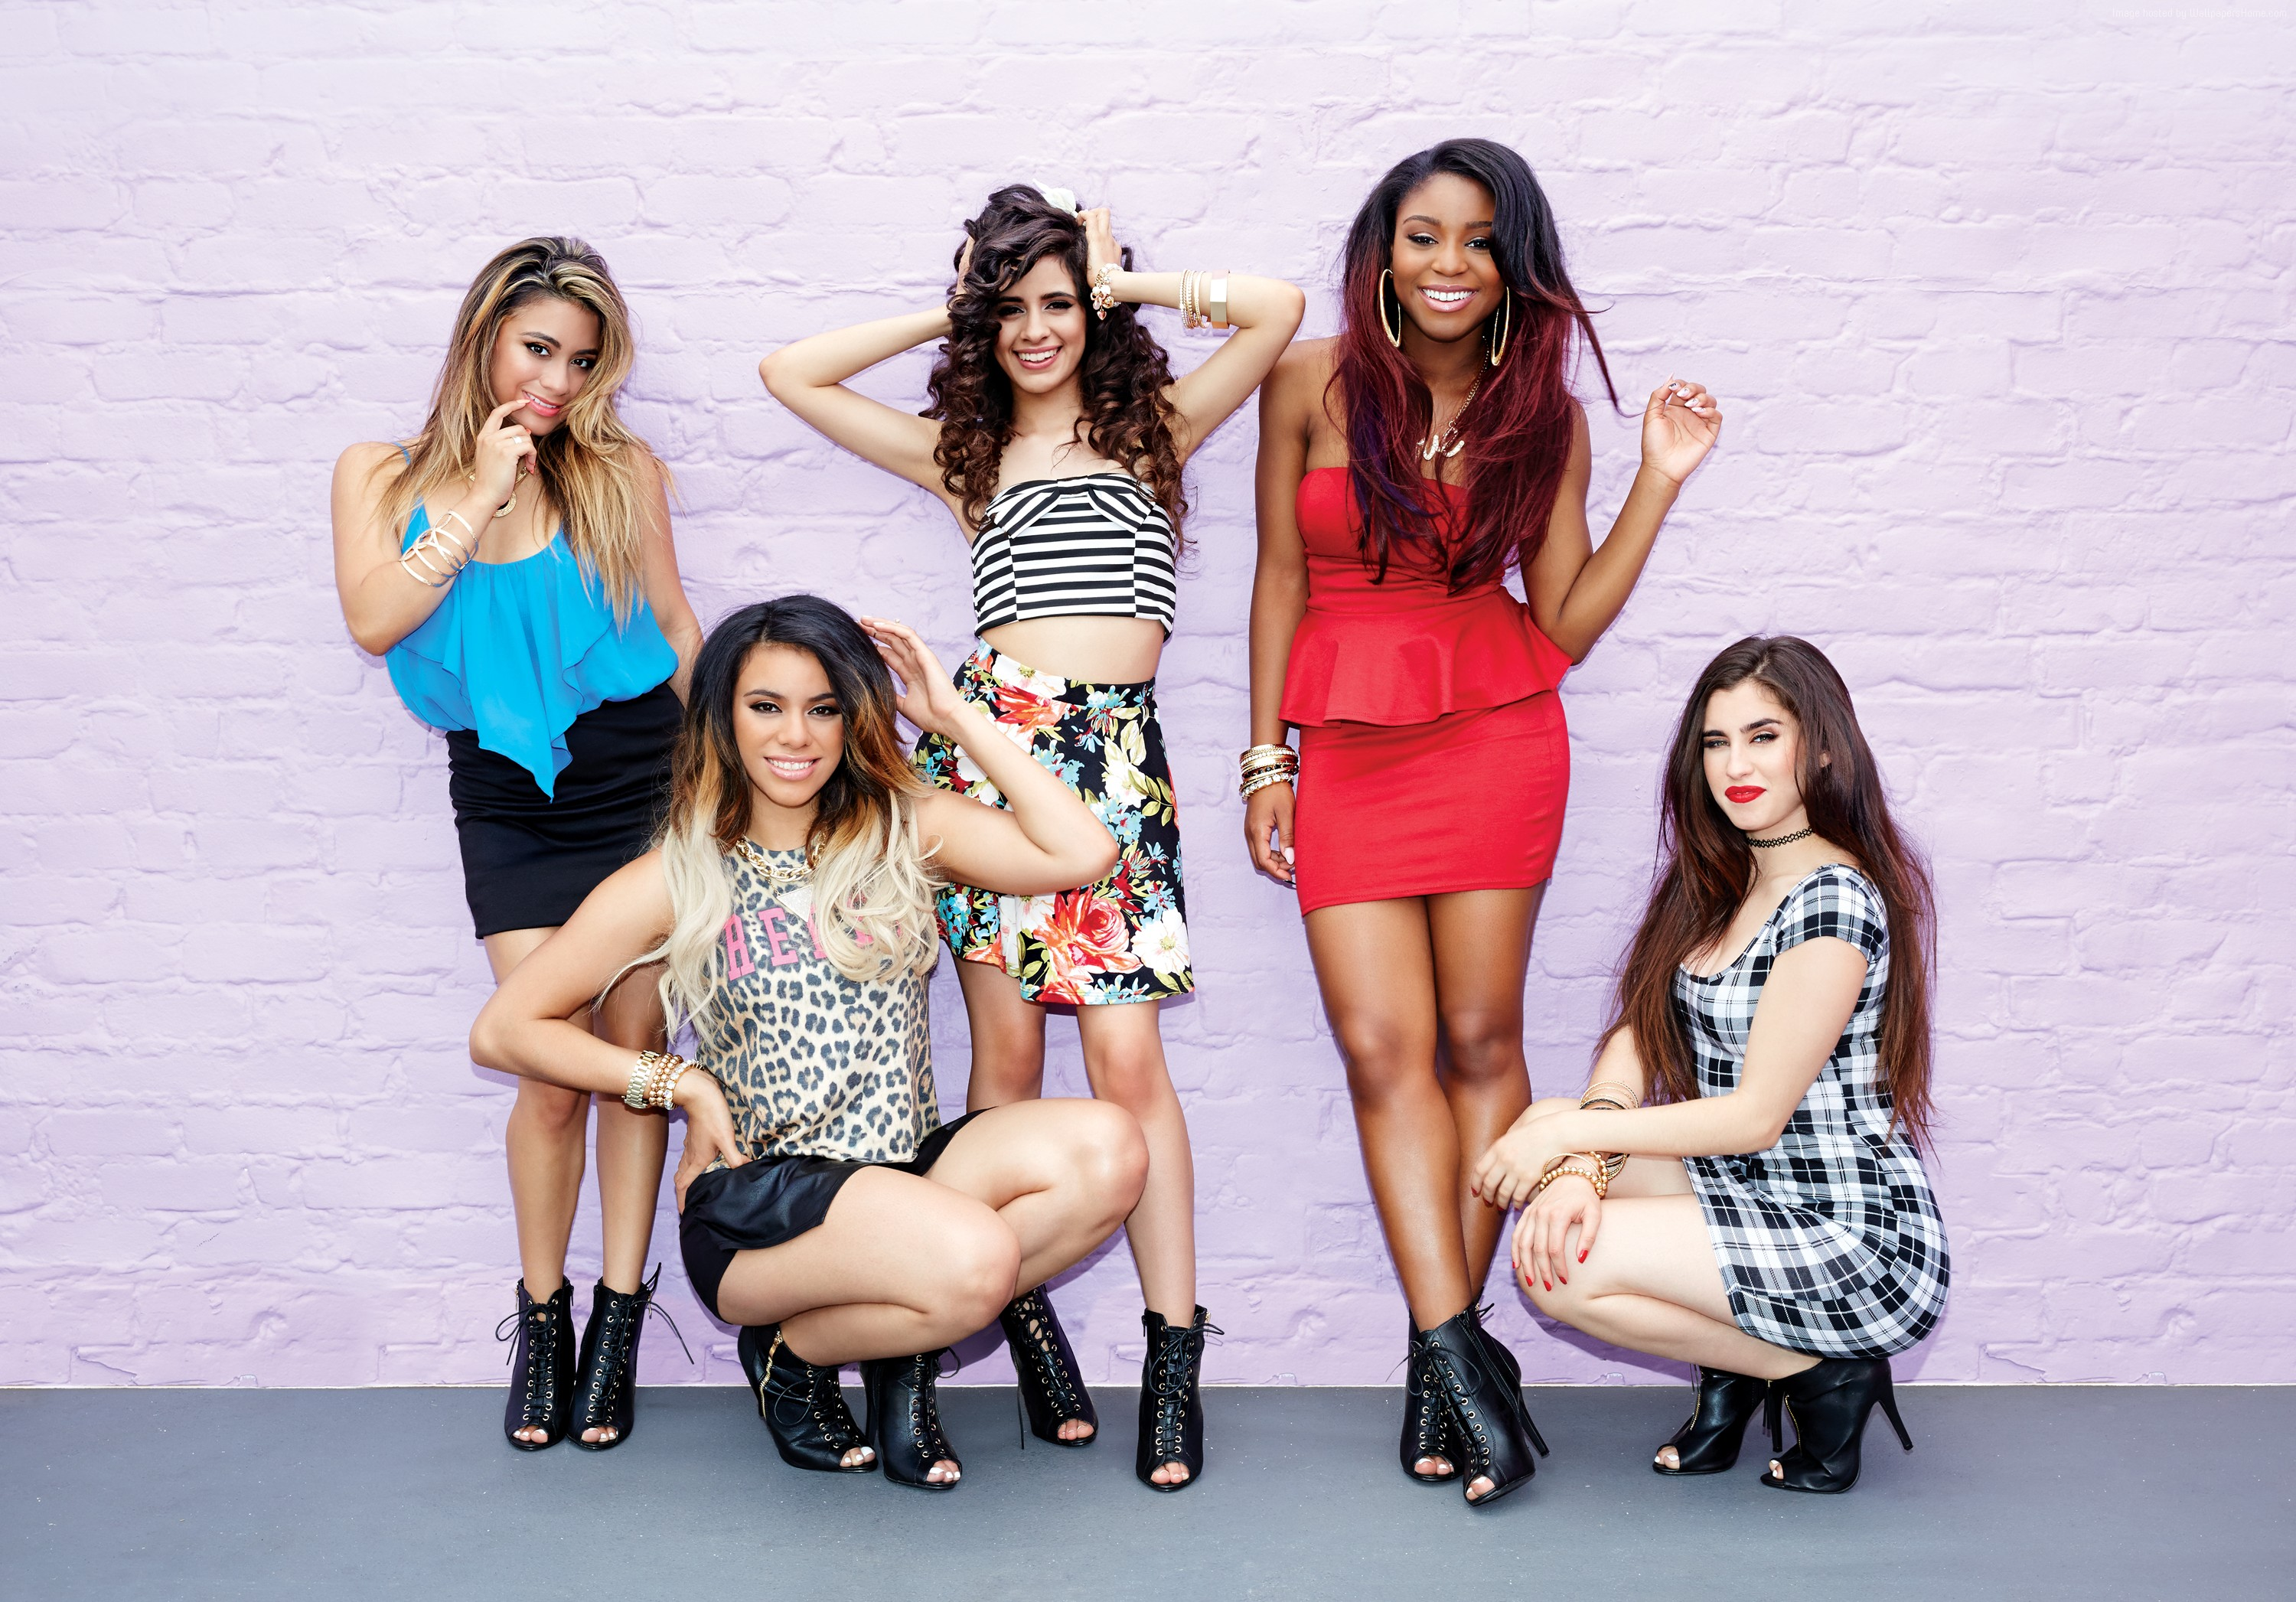 Download Fifth Harmony And Park Wallpaper Images Free - ZaLoro